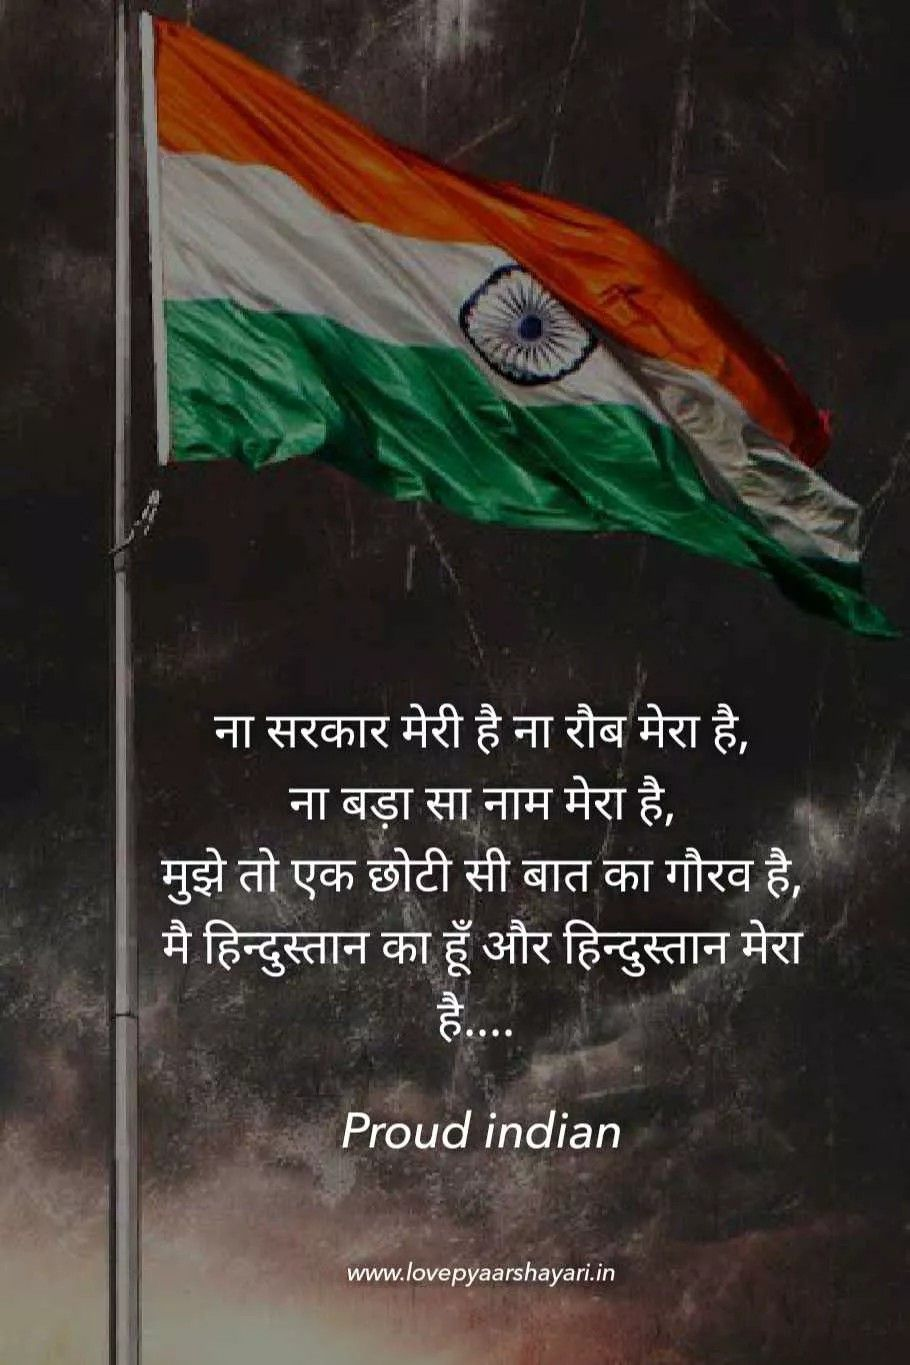 Independence Day Quotes In Hindi Independence Day Quotes Indian Independence Day Quotes Happy Independence Day Quotes